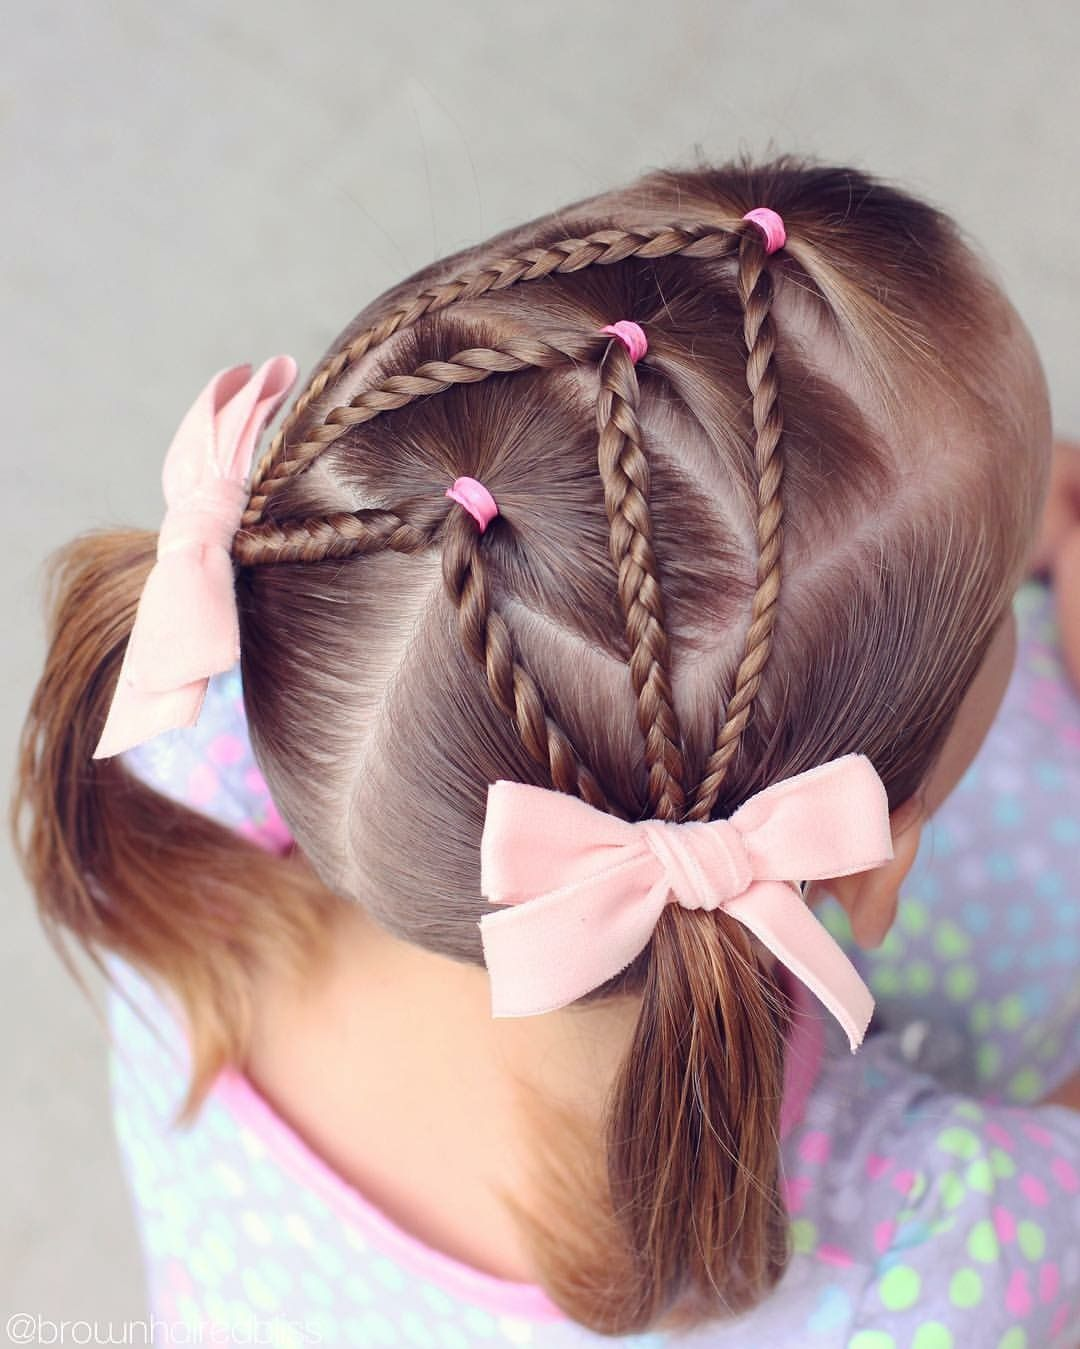 Boy hairstyle with braids pin by jennie nelson on hair  pinterest  hair style girl hair and